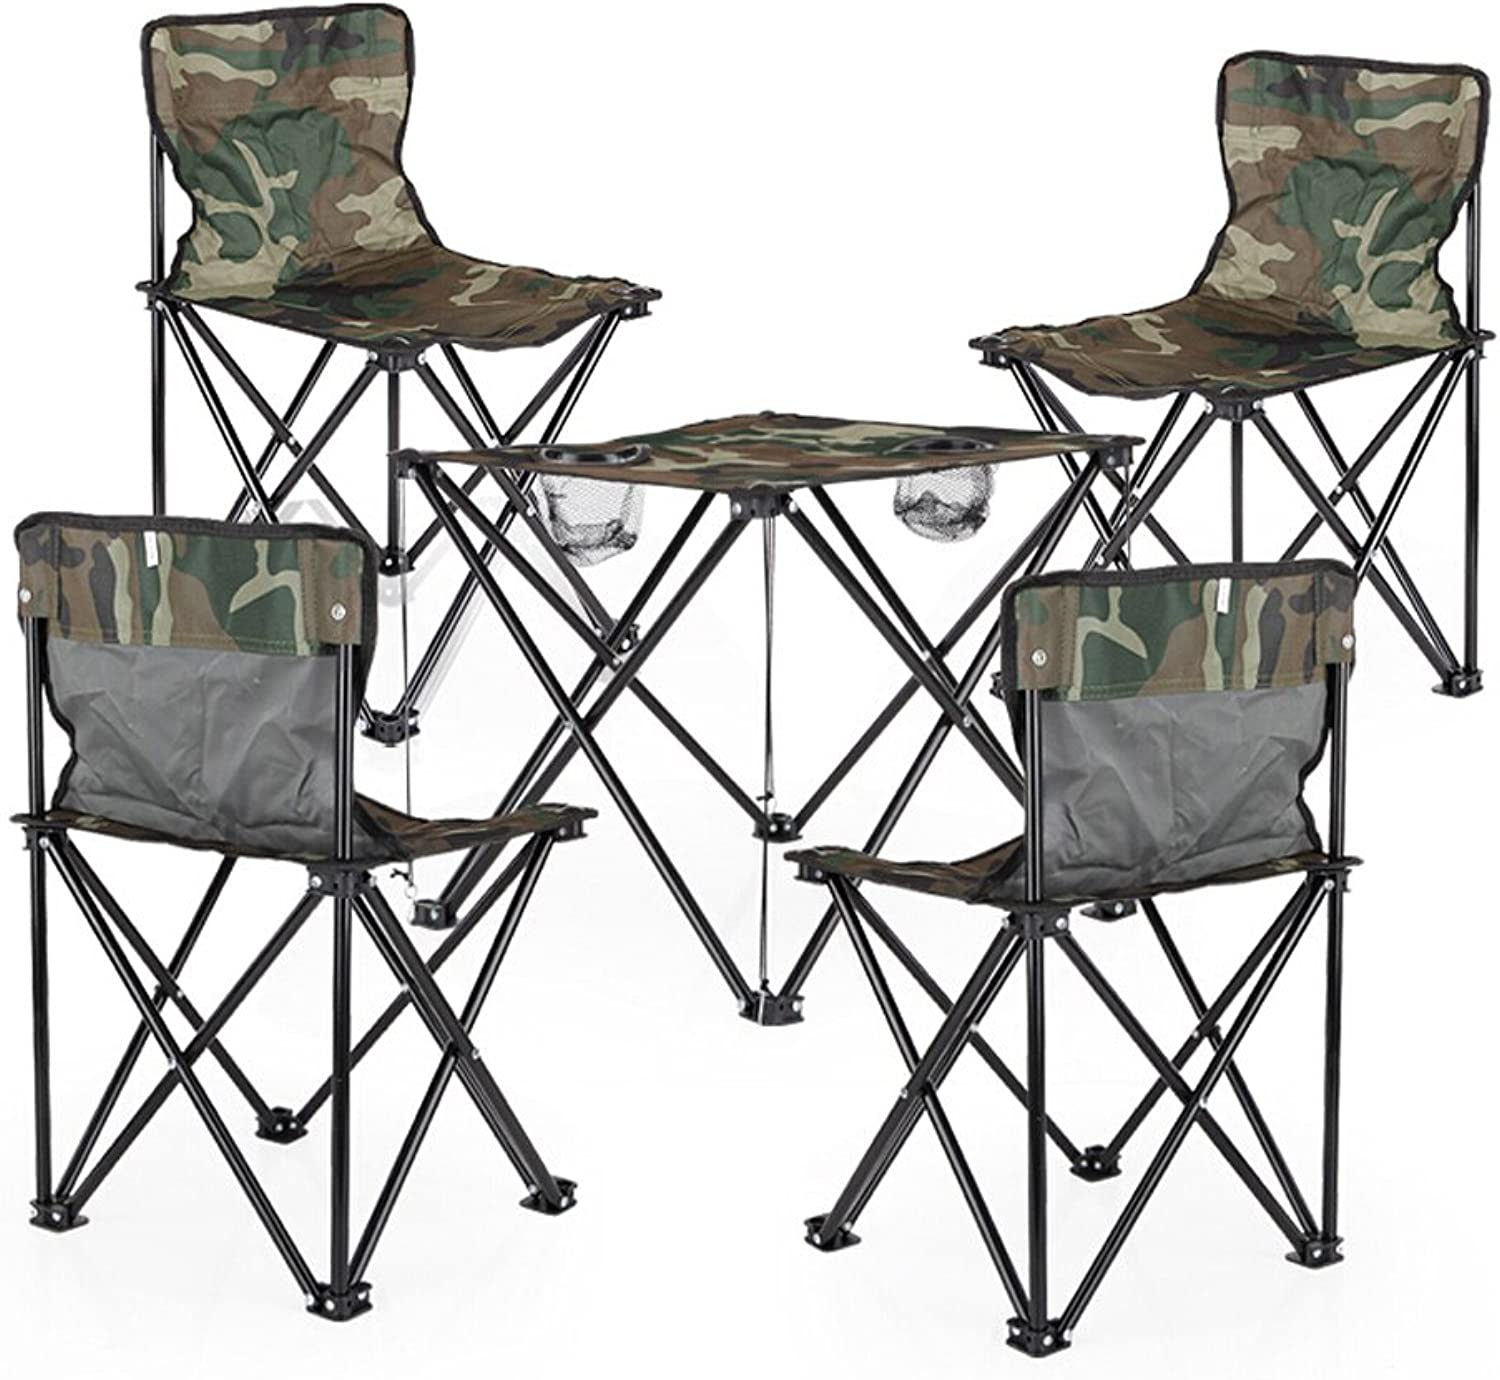 XUANLAN Folding Table and Chair Set Folding Portable Camouflage Table and Chairs Camping Beach Park Lightweight Table and Chairs